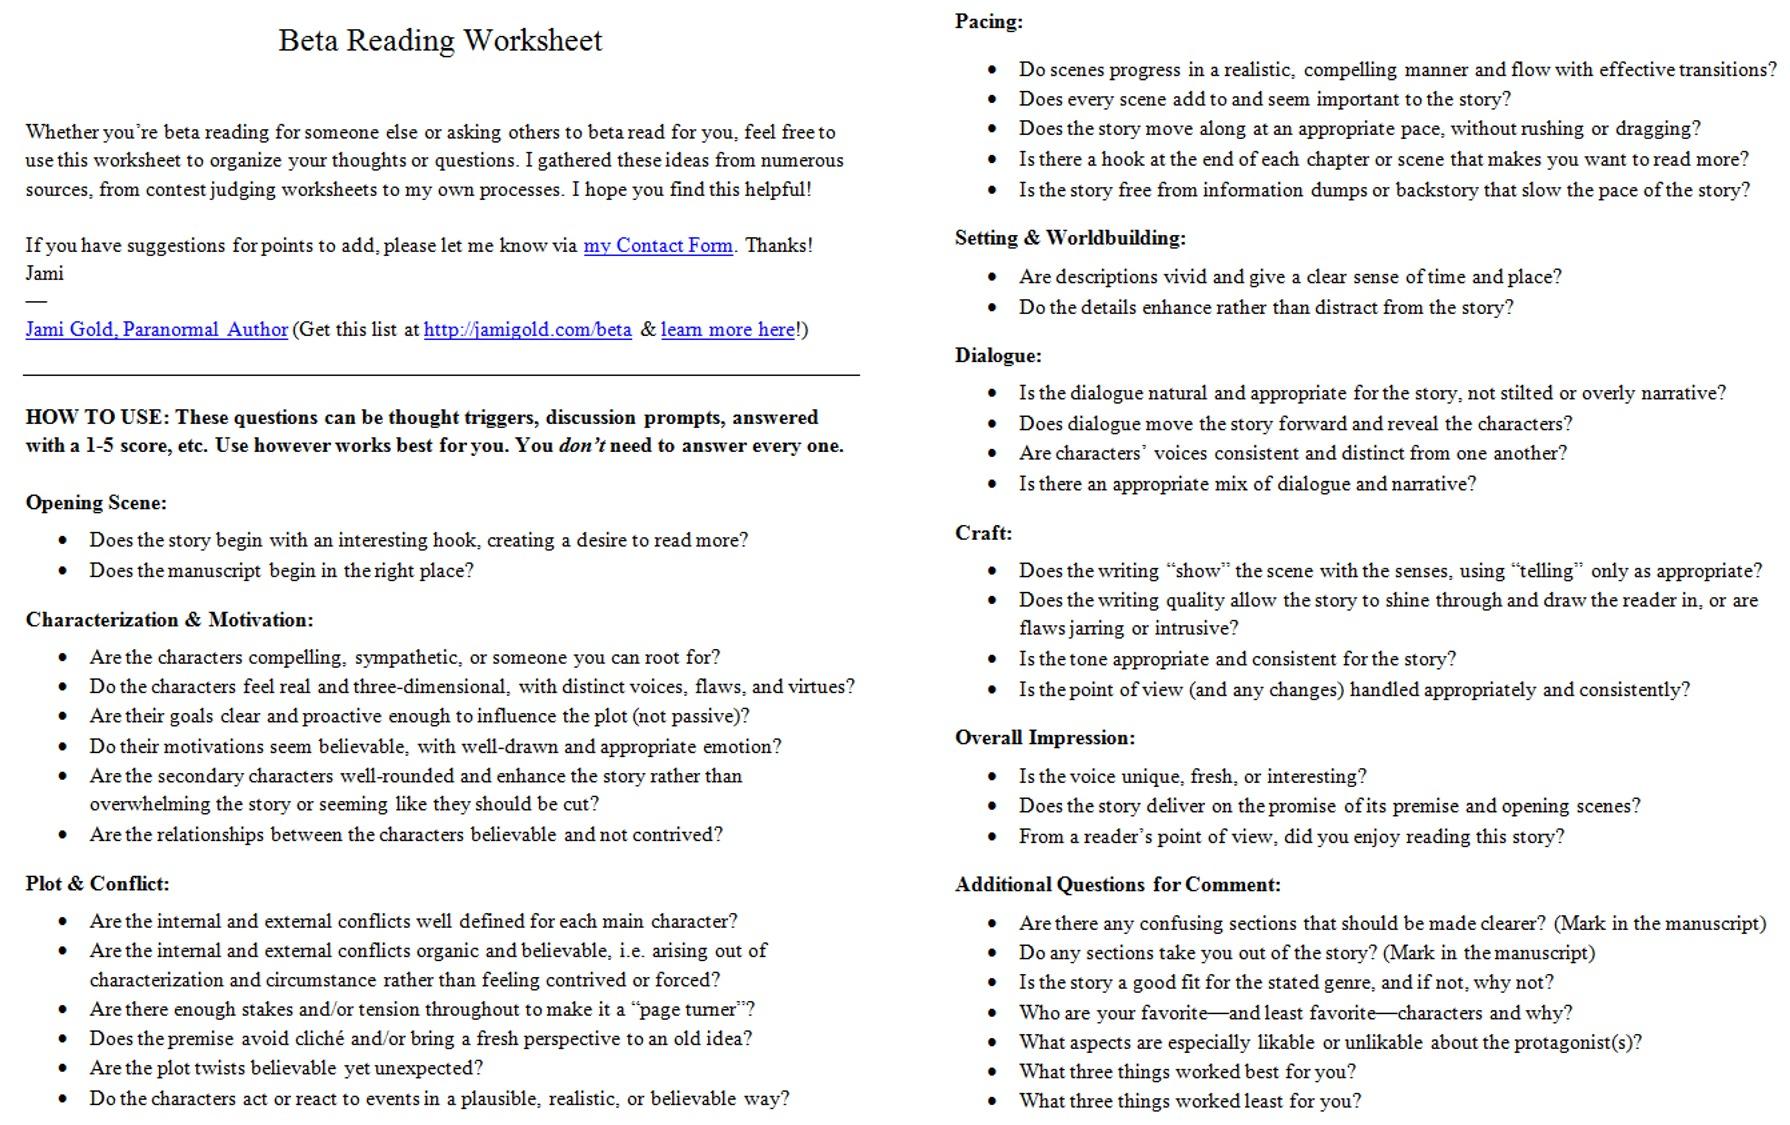 Aldiablosus  Marvellous Worksheets For Writers  Jami Gold Paranormal Author With Marvelous Screen Shot Of The Twopage Beta Reading Worksheet With Appealing Kinds Of Sentence Worksheets Also Active Worksheets In Addition Reading Temperature Worksheets And Letter F Handwriting Worksheet As Well As Halloween Themed Math Worksheets Additionally Free Ict Worksheets From Jamigoldcom With Aldiablosus  Marvelous Worksheets For Writers  Jami Gold Paranormal Author With Appealing Screen Shot Of The Twopage Beta Reading Worksheet And Marvellous Kinds Of Sentence Worksheets Also Active Worksheets In Addition Reading Temperature Worksheets From Jamigoldcom